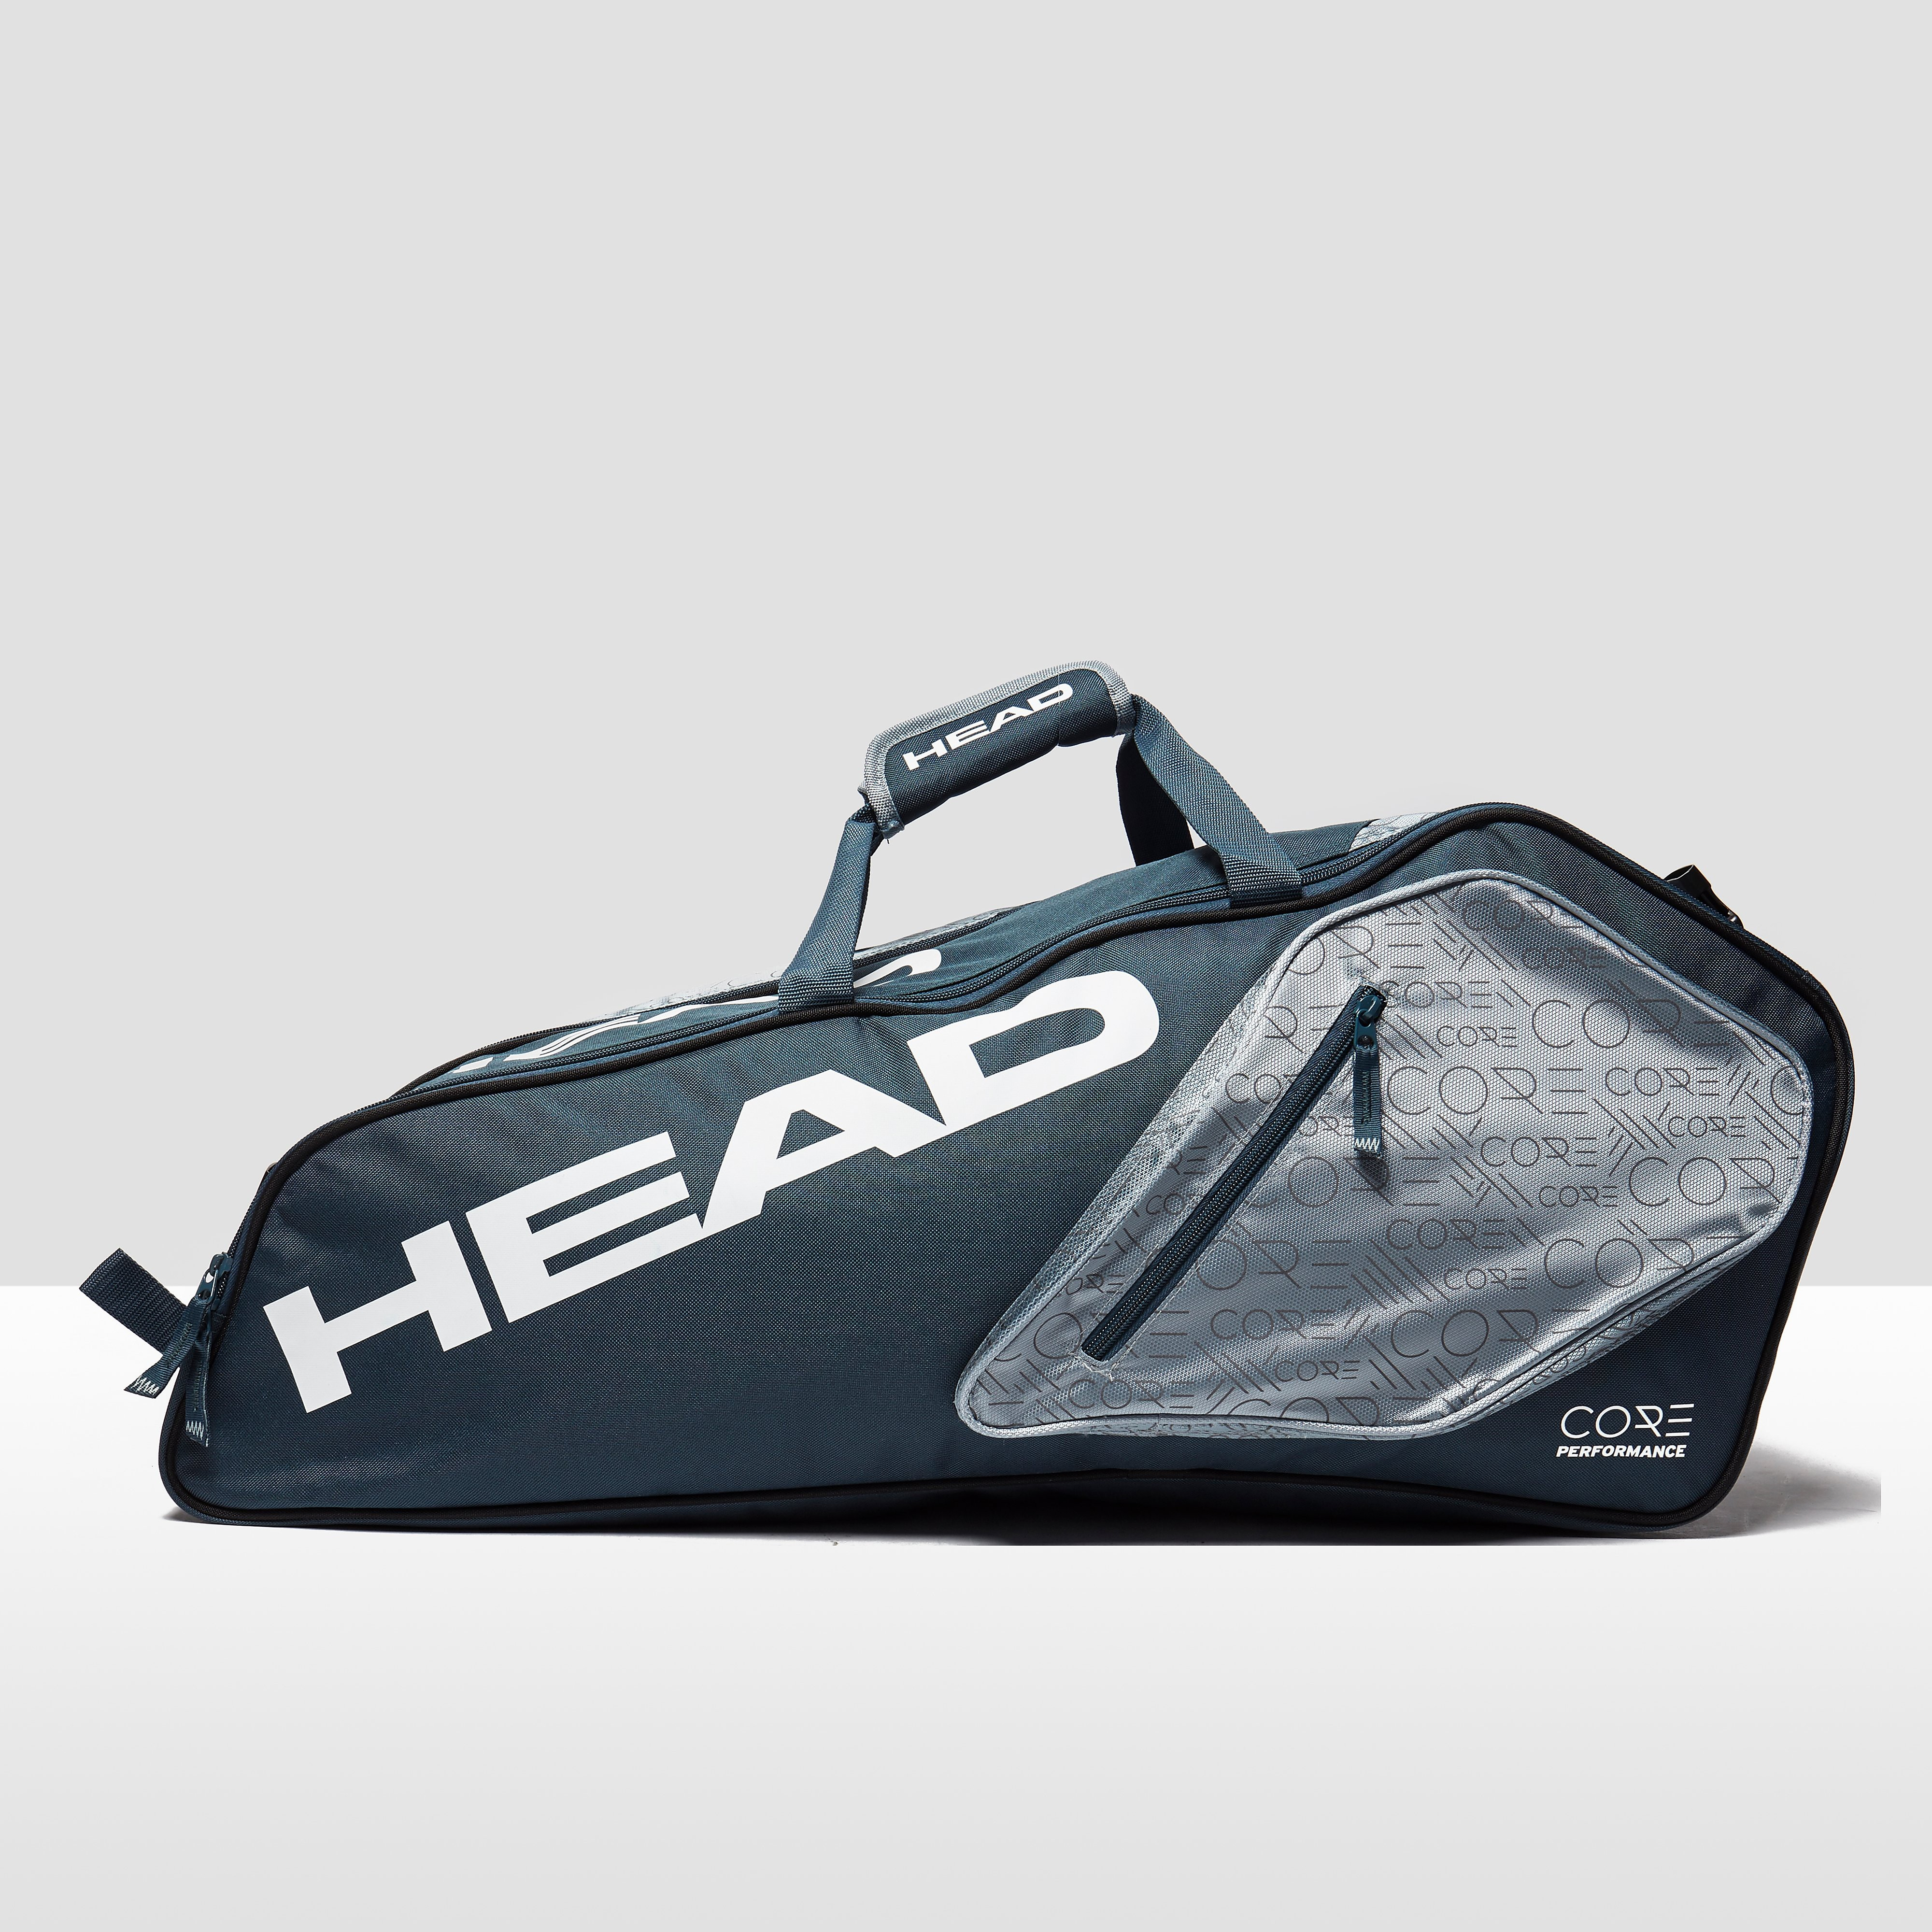 Head Core 6R Combi Racketbag